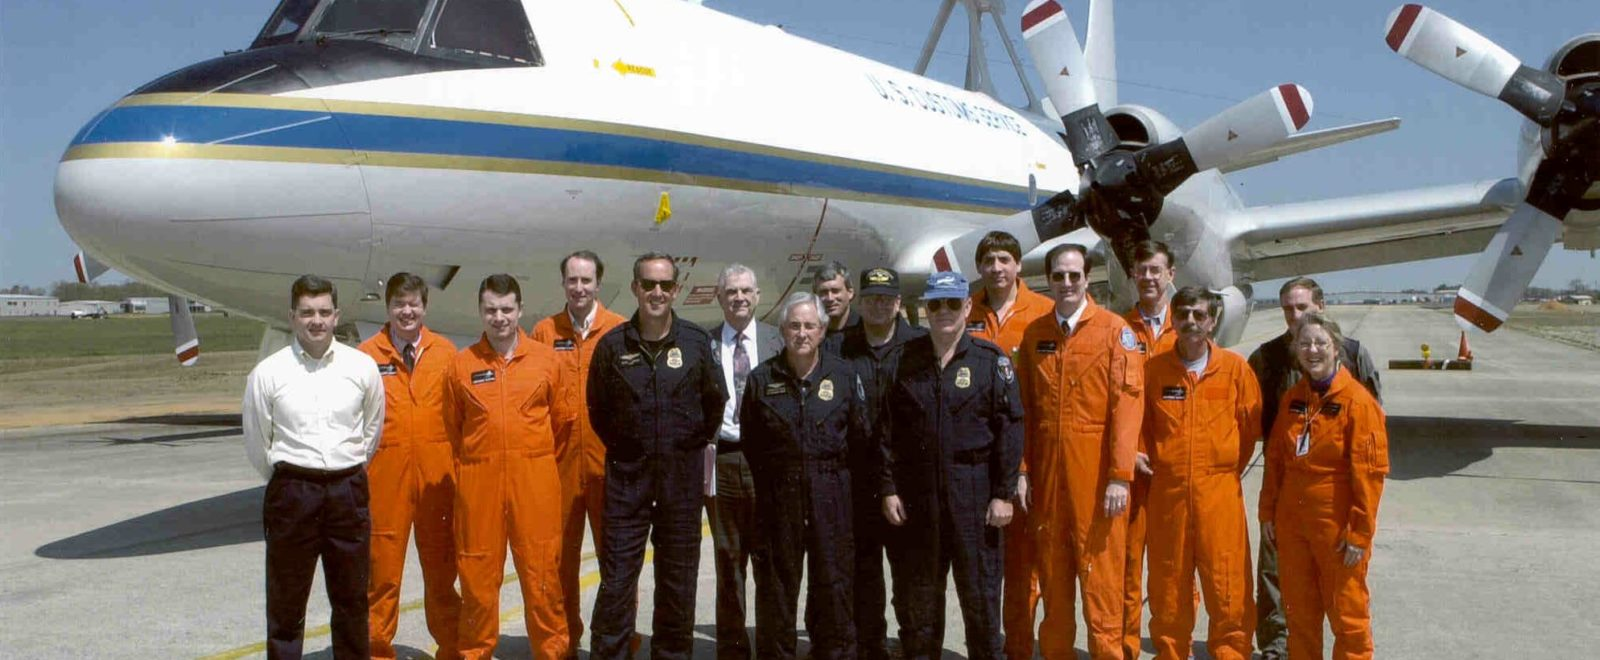 Carla Jackson poses with members of NAVAIR, Lockheed, and US Customs after a P-3 flight test